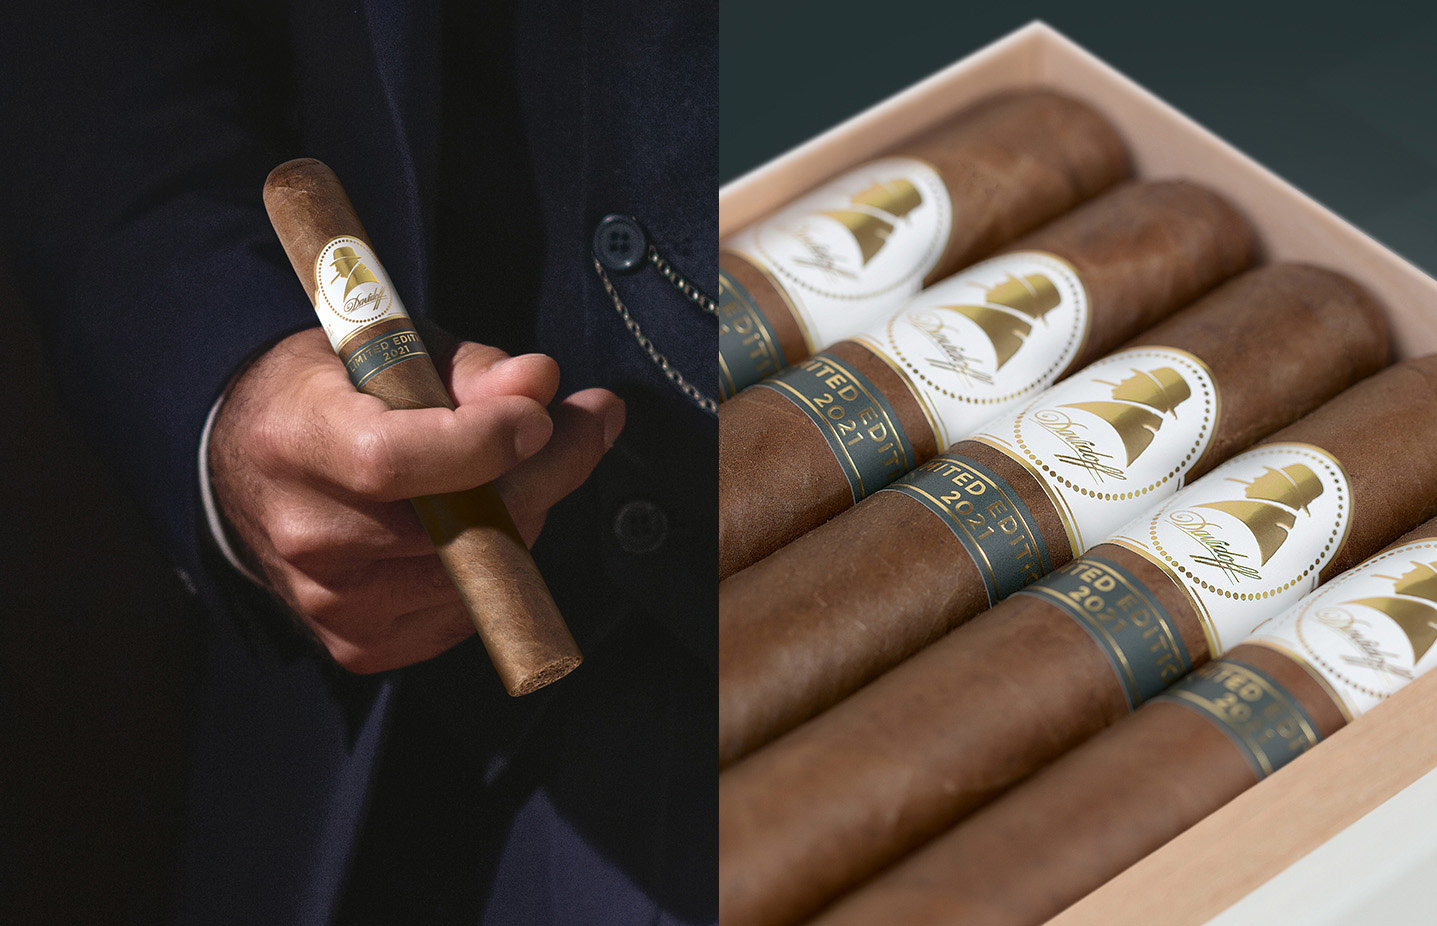 The Davidoff Winston Churchill Cigar held in a hand